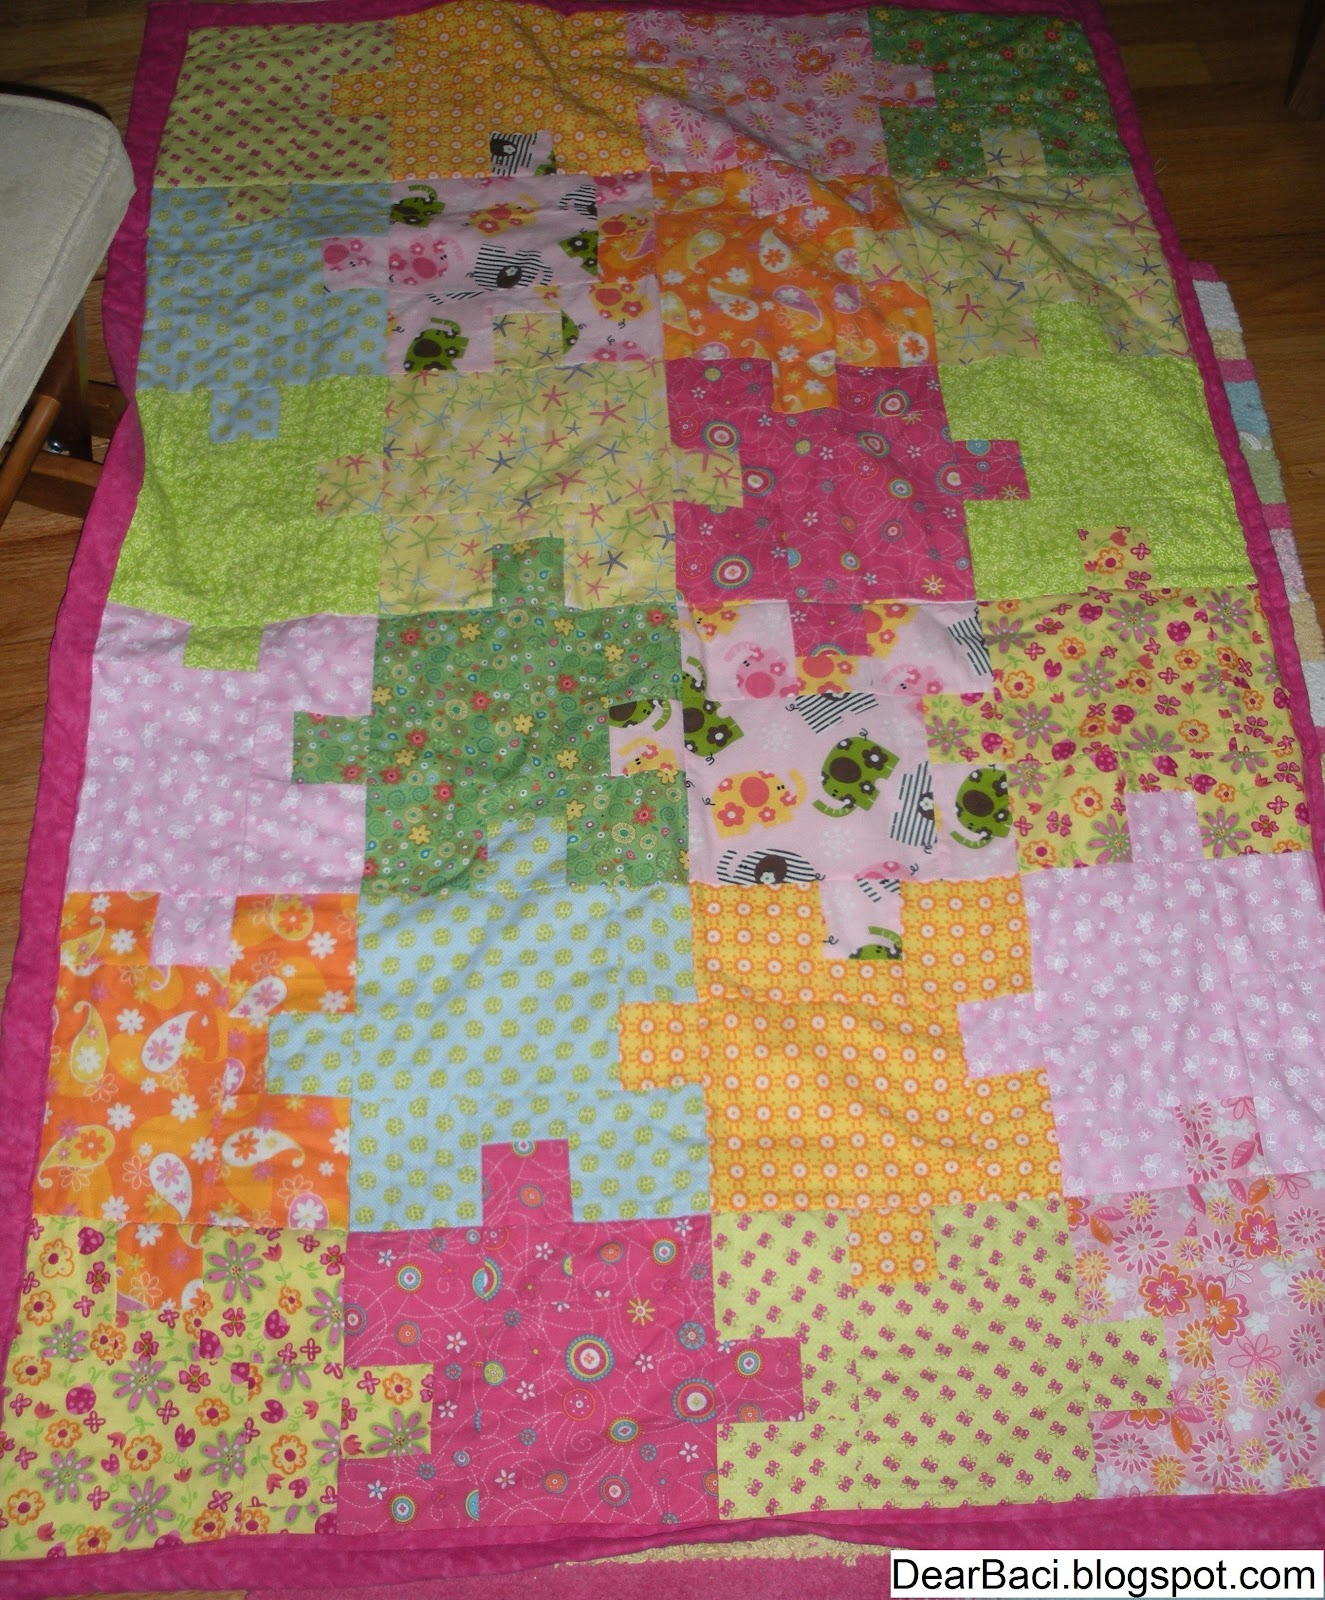 My friend's daughter is 2 1/2 and she is now using this quilt in her ...: dearbaci.blogspot.com/2012/07/jigsaw-puzzle-quilts.html